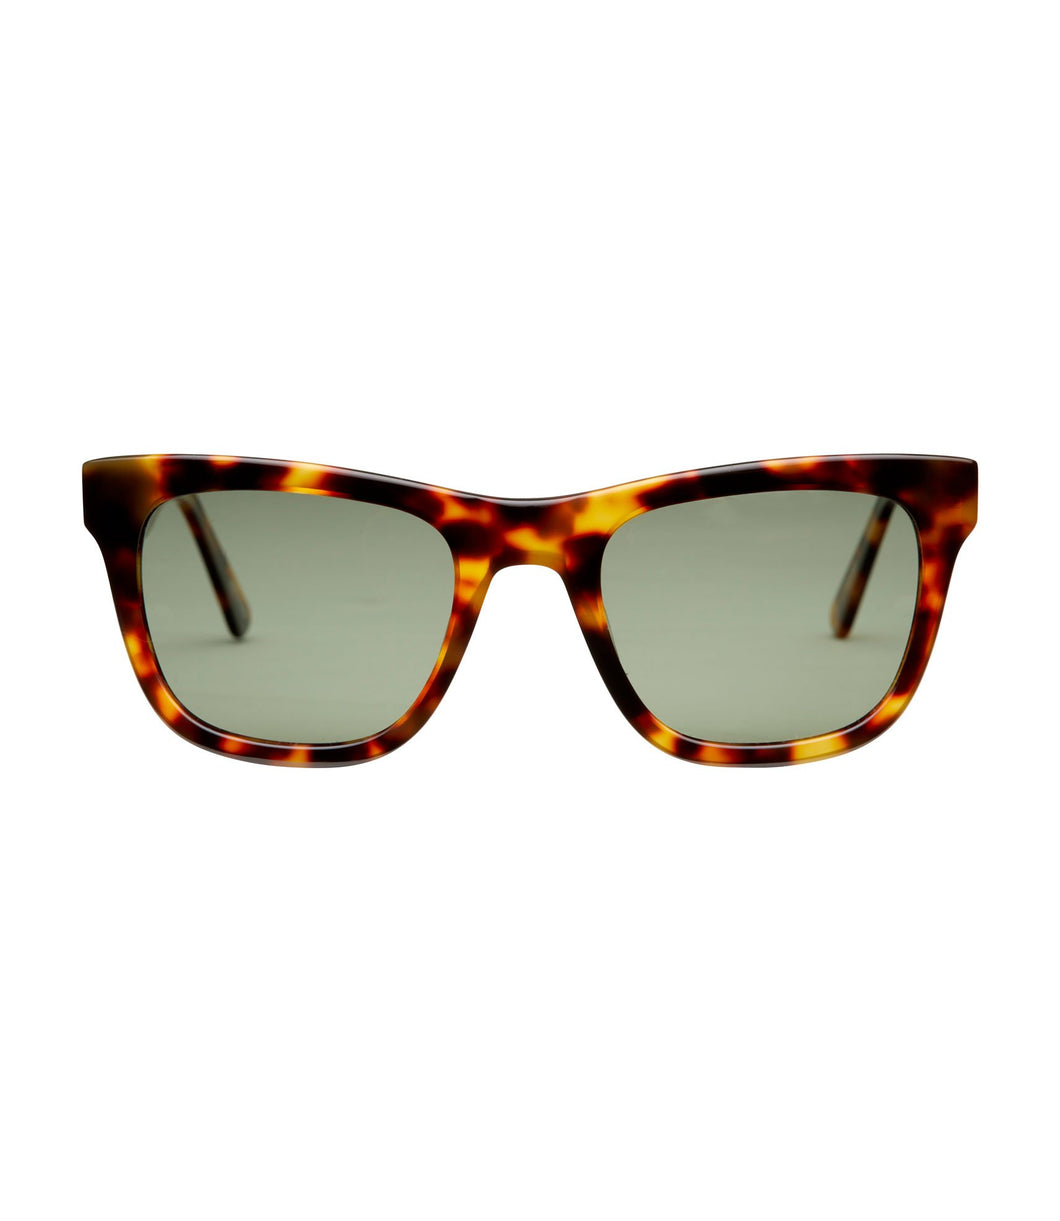 Basic State style traders Sunglasses life less common Venice Torteshell Tortoiseshell